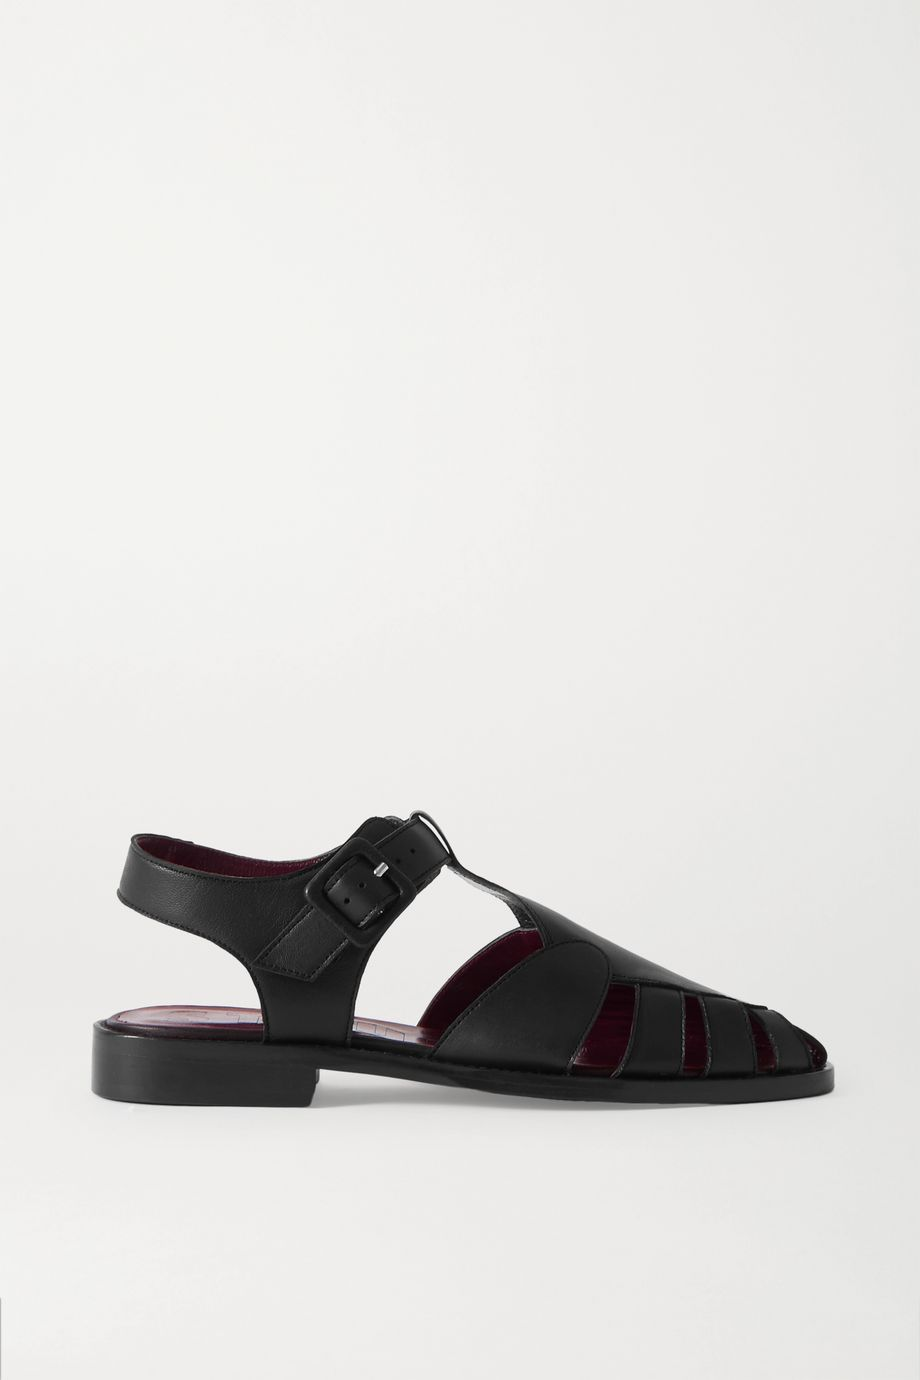 STAUD Brady cutout leather loafers